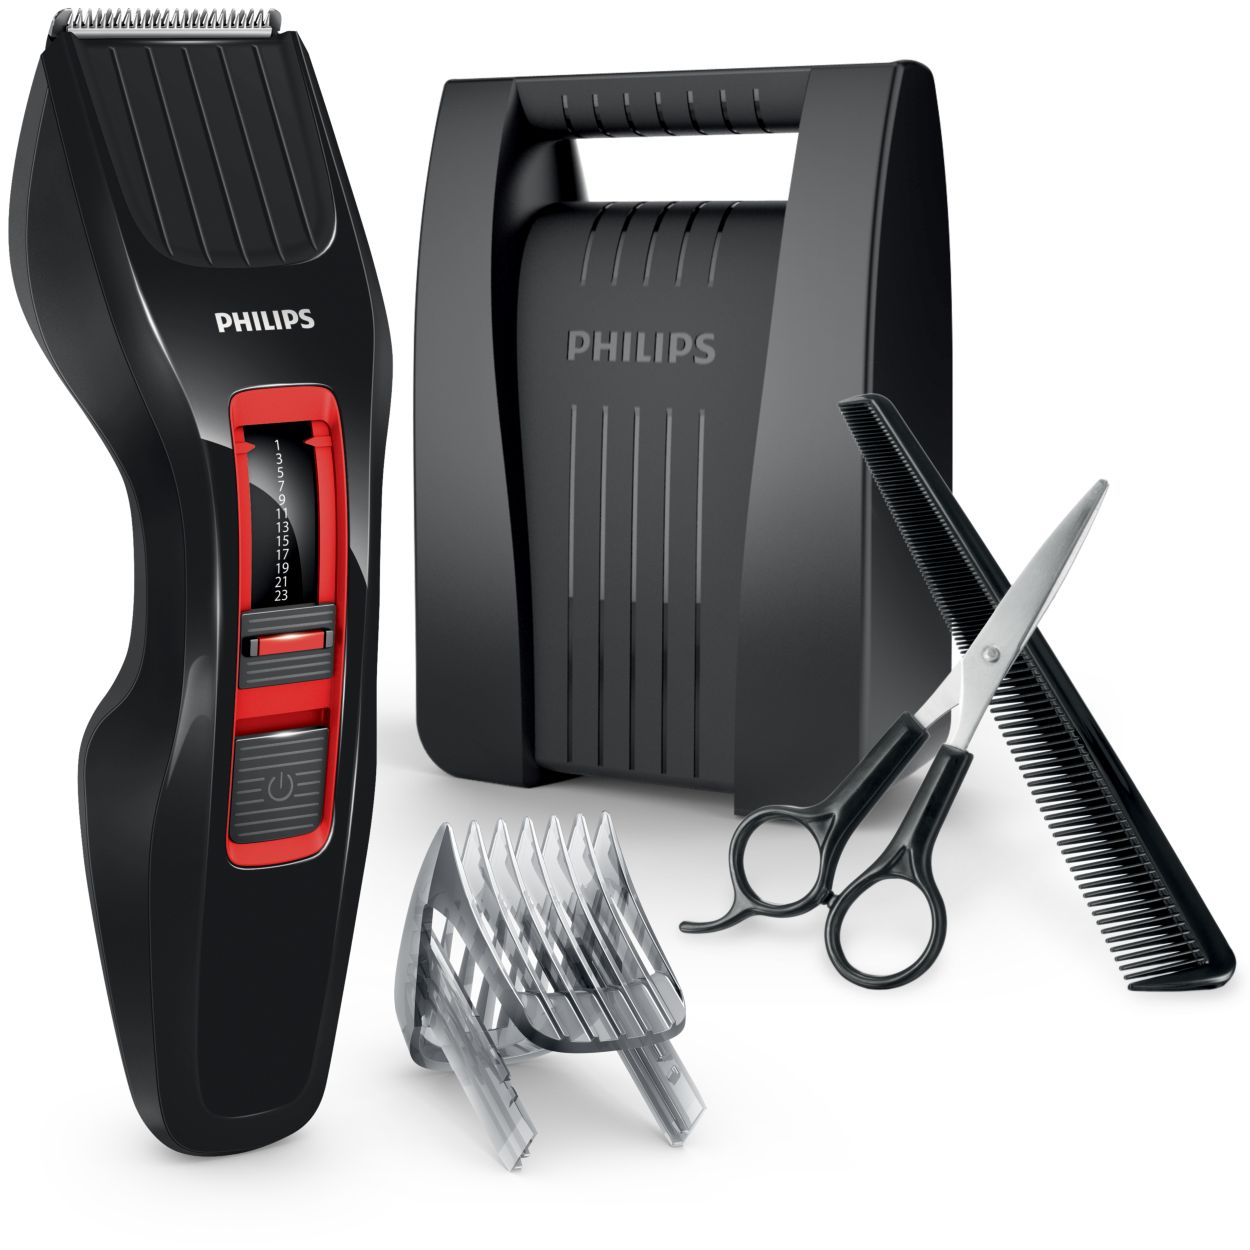 Hairclipper series 3000 iHairi iclipperi with stainless steel